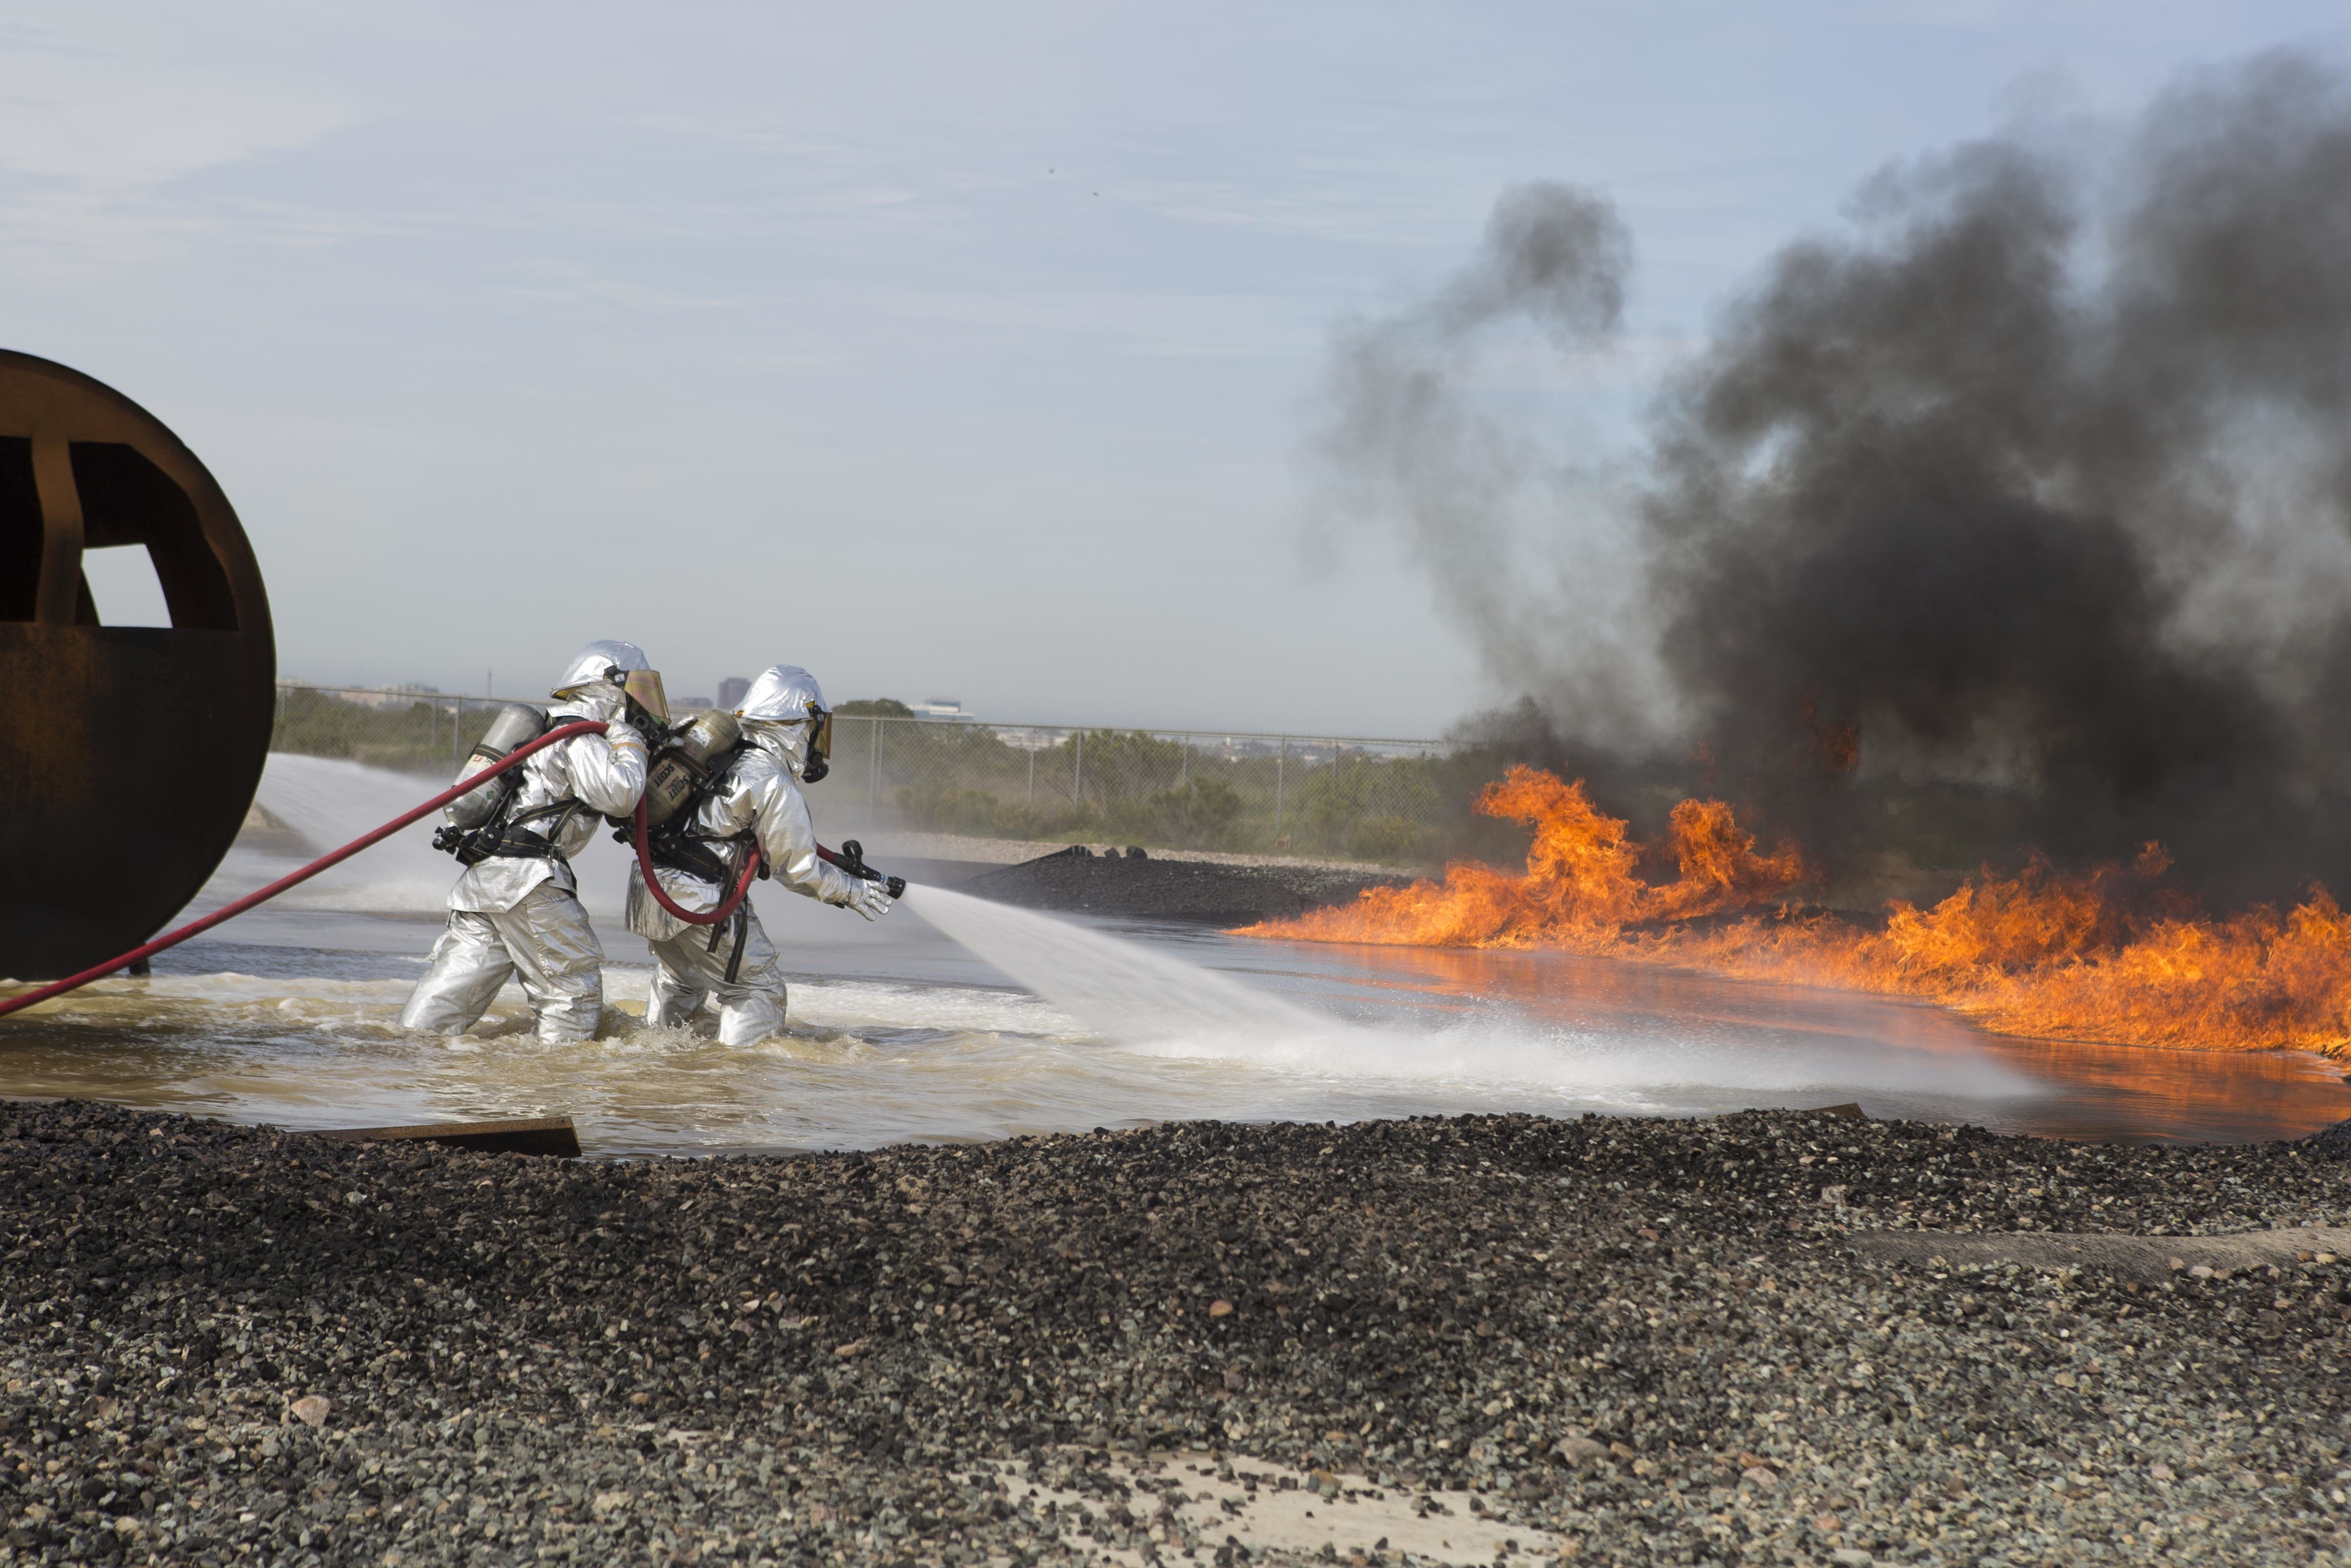 Download Hi-Res Photo Download Share Photo Details Details. Aircraft Rescue  and Firefighting ...